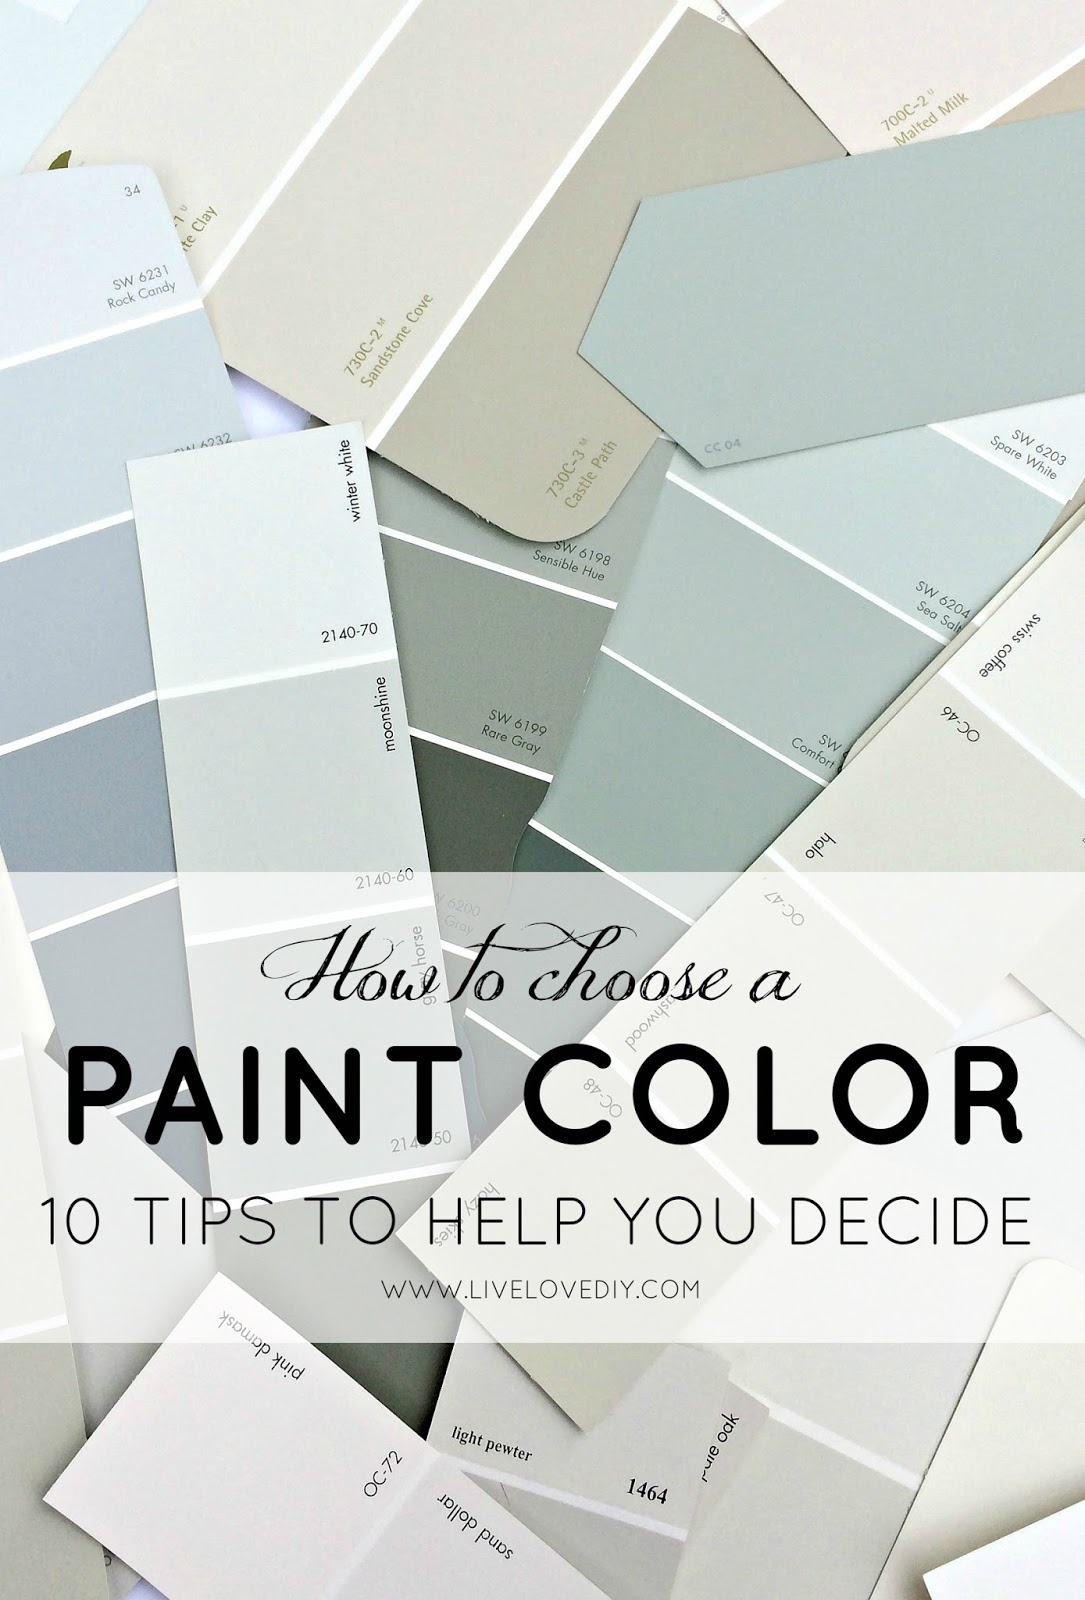 how to choose a paint color 10 tips to help you decide livelovediy bloglovin. Black Bedroom Furniture Sets. Home Design Ideas